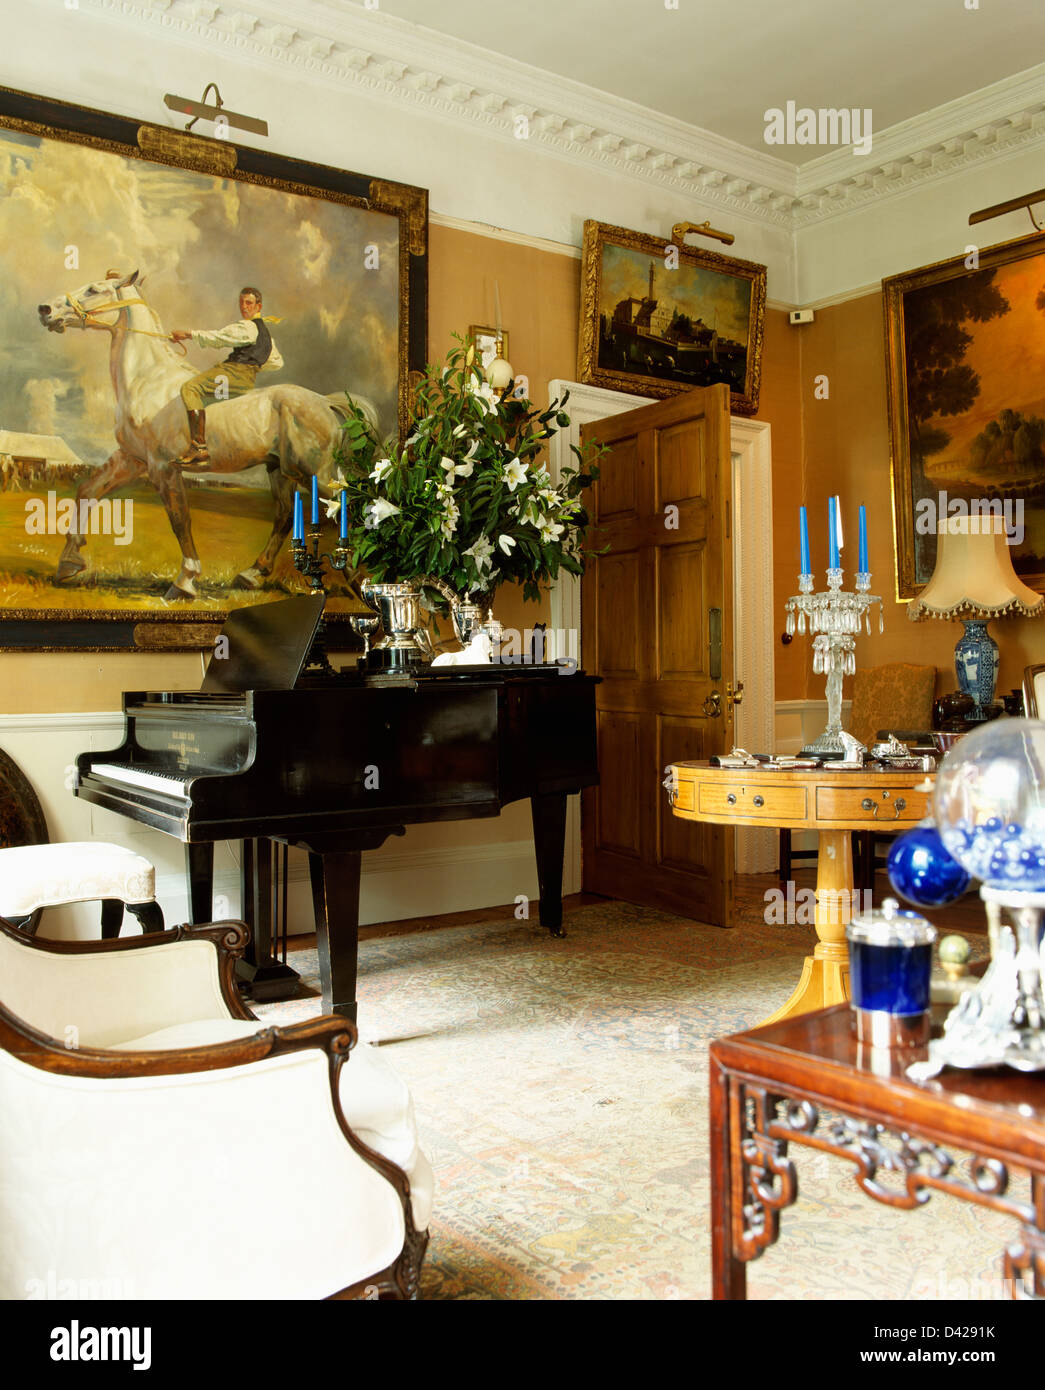 Exceptional Large Painting On Wall Above Grand Piano In Country Drawing Room With  Antique Furniture